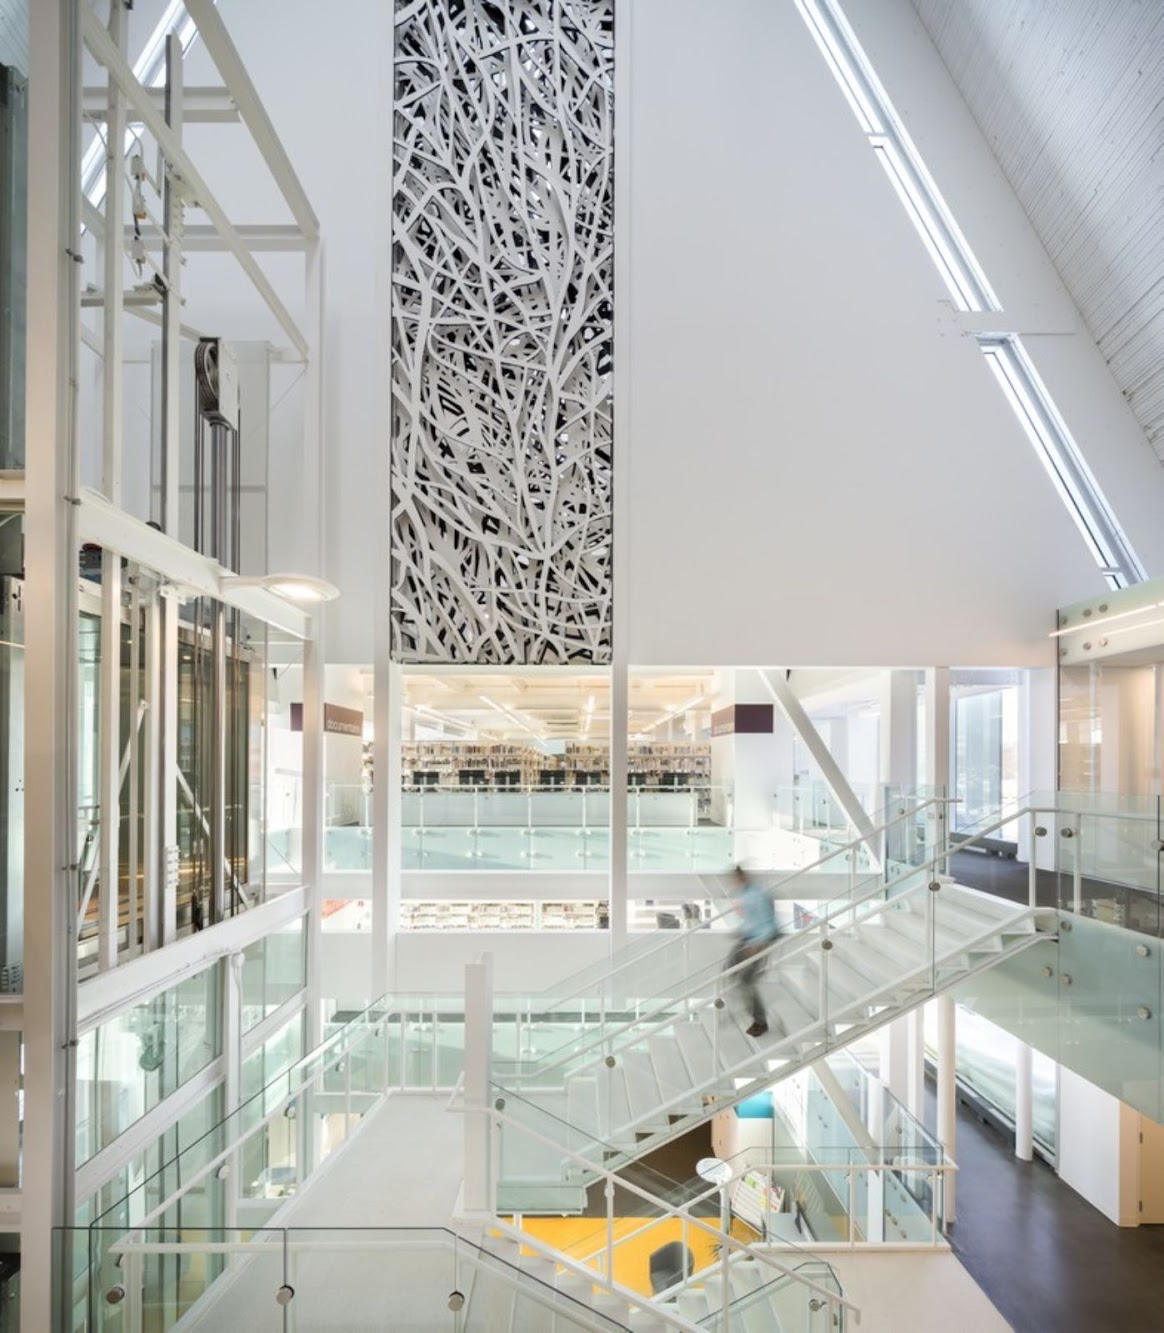 Monique Corriveau Library by Dan Hanganu and Clc